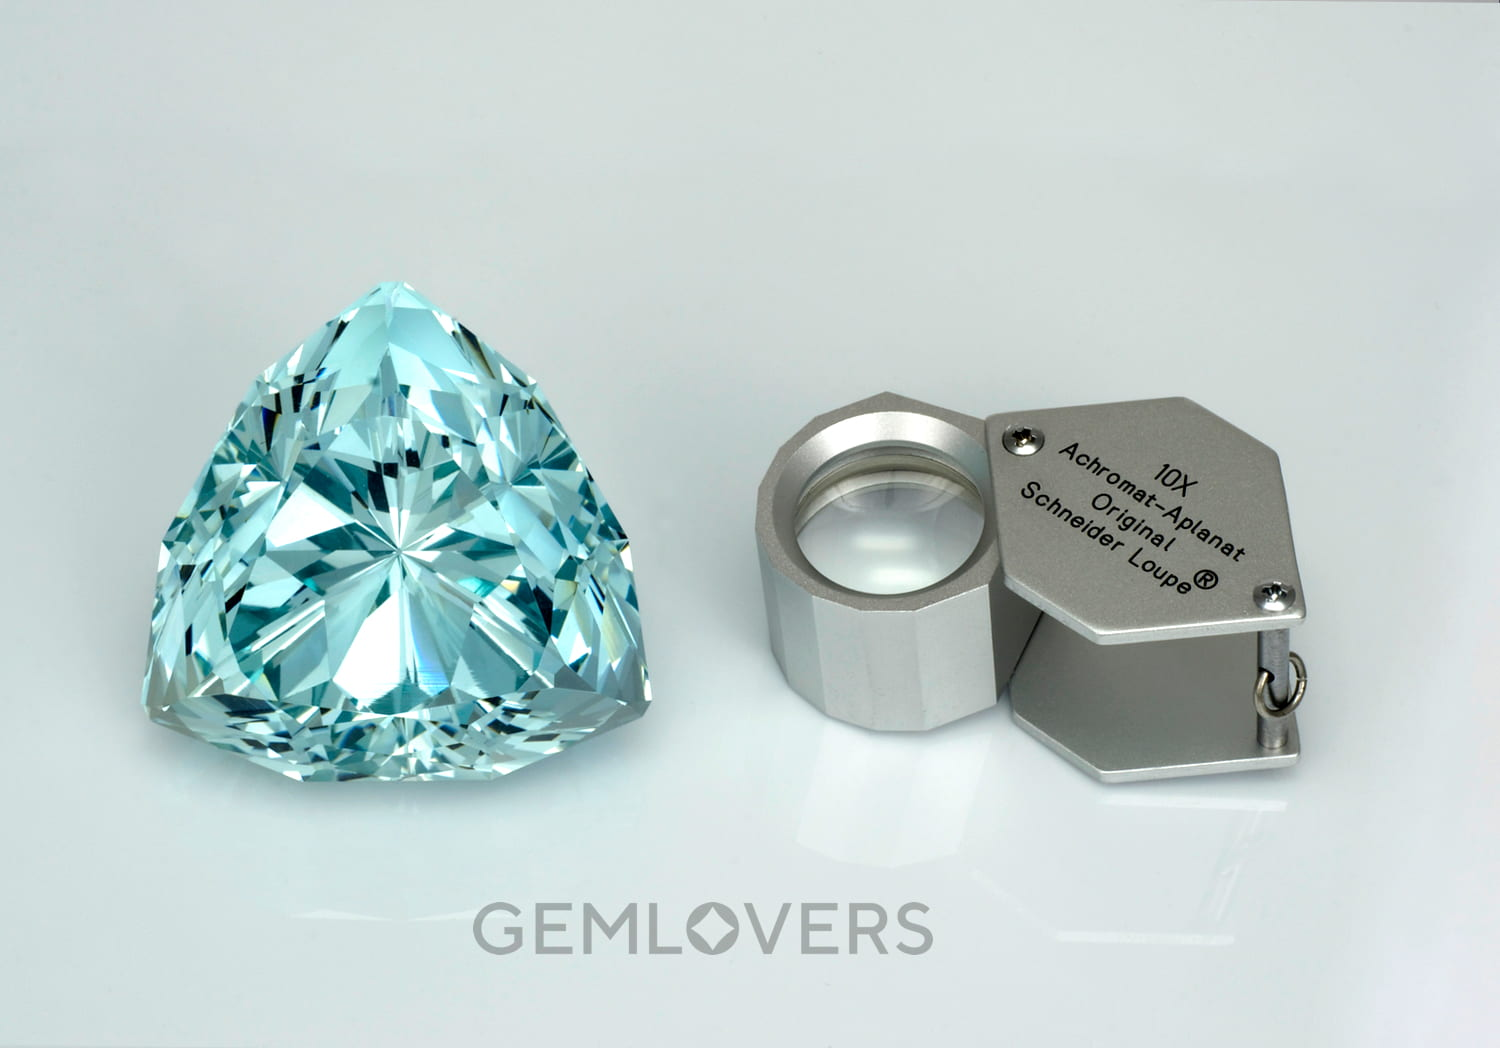 very large size aquamarine stone (over 400 carats) and excellent cut